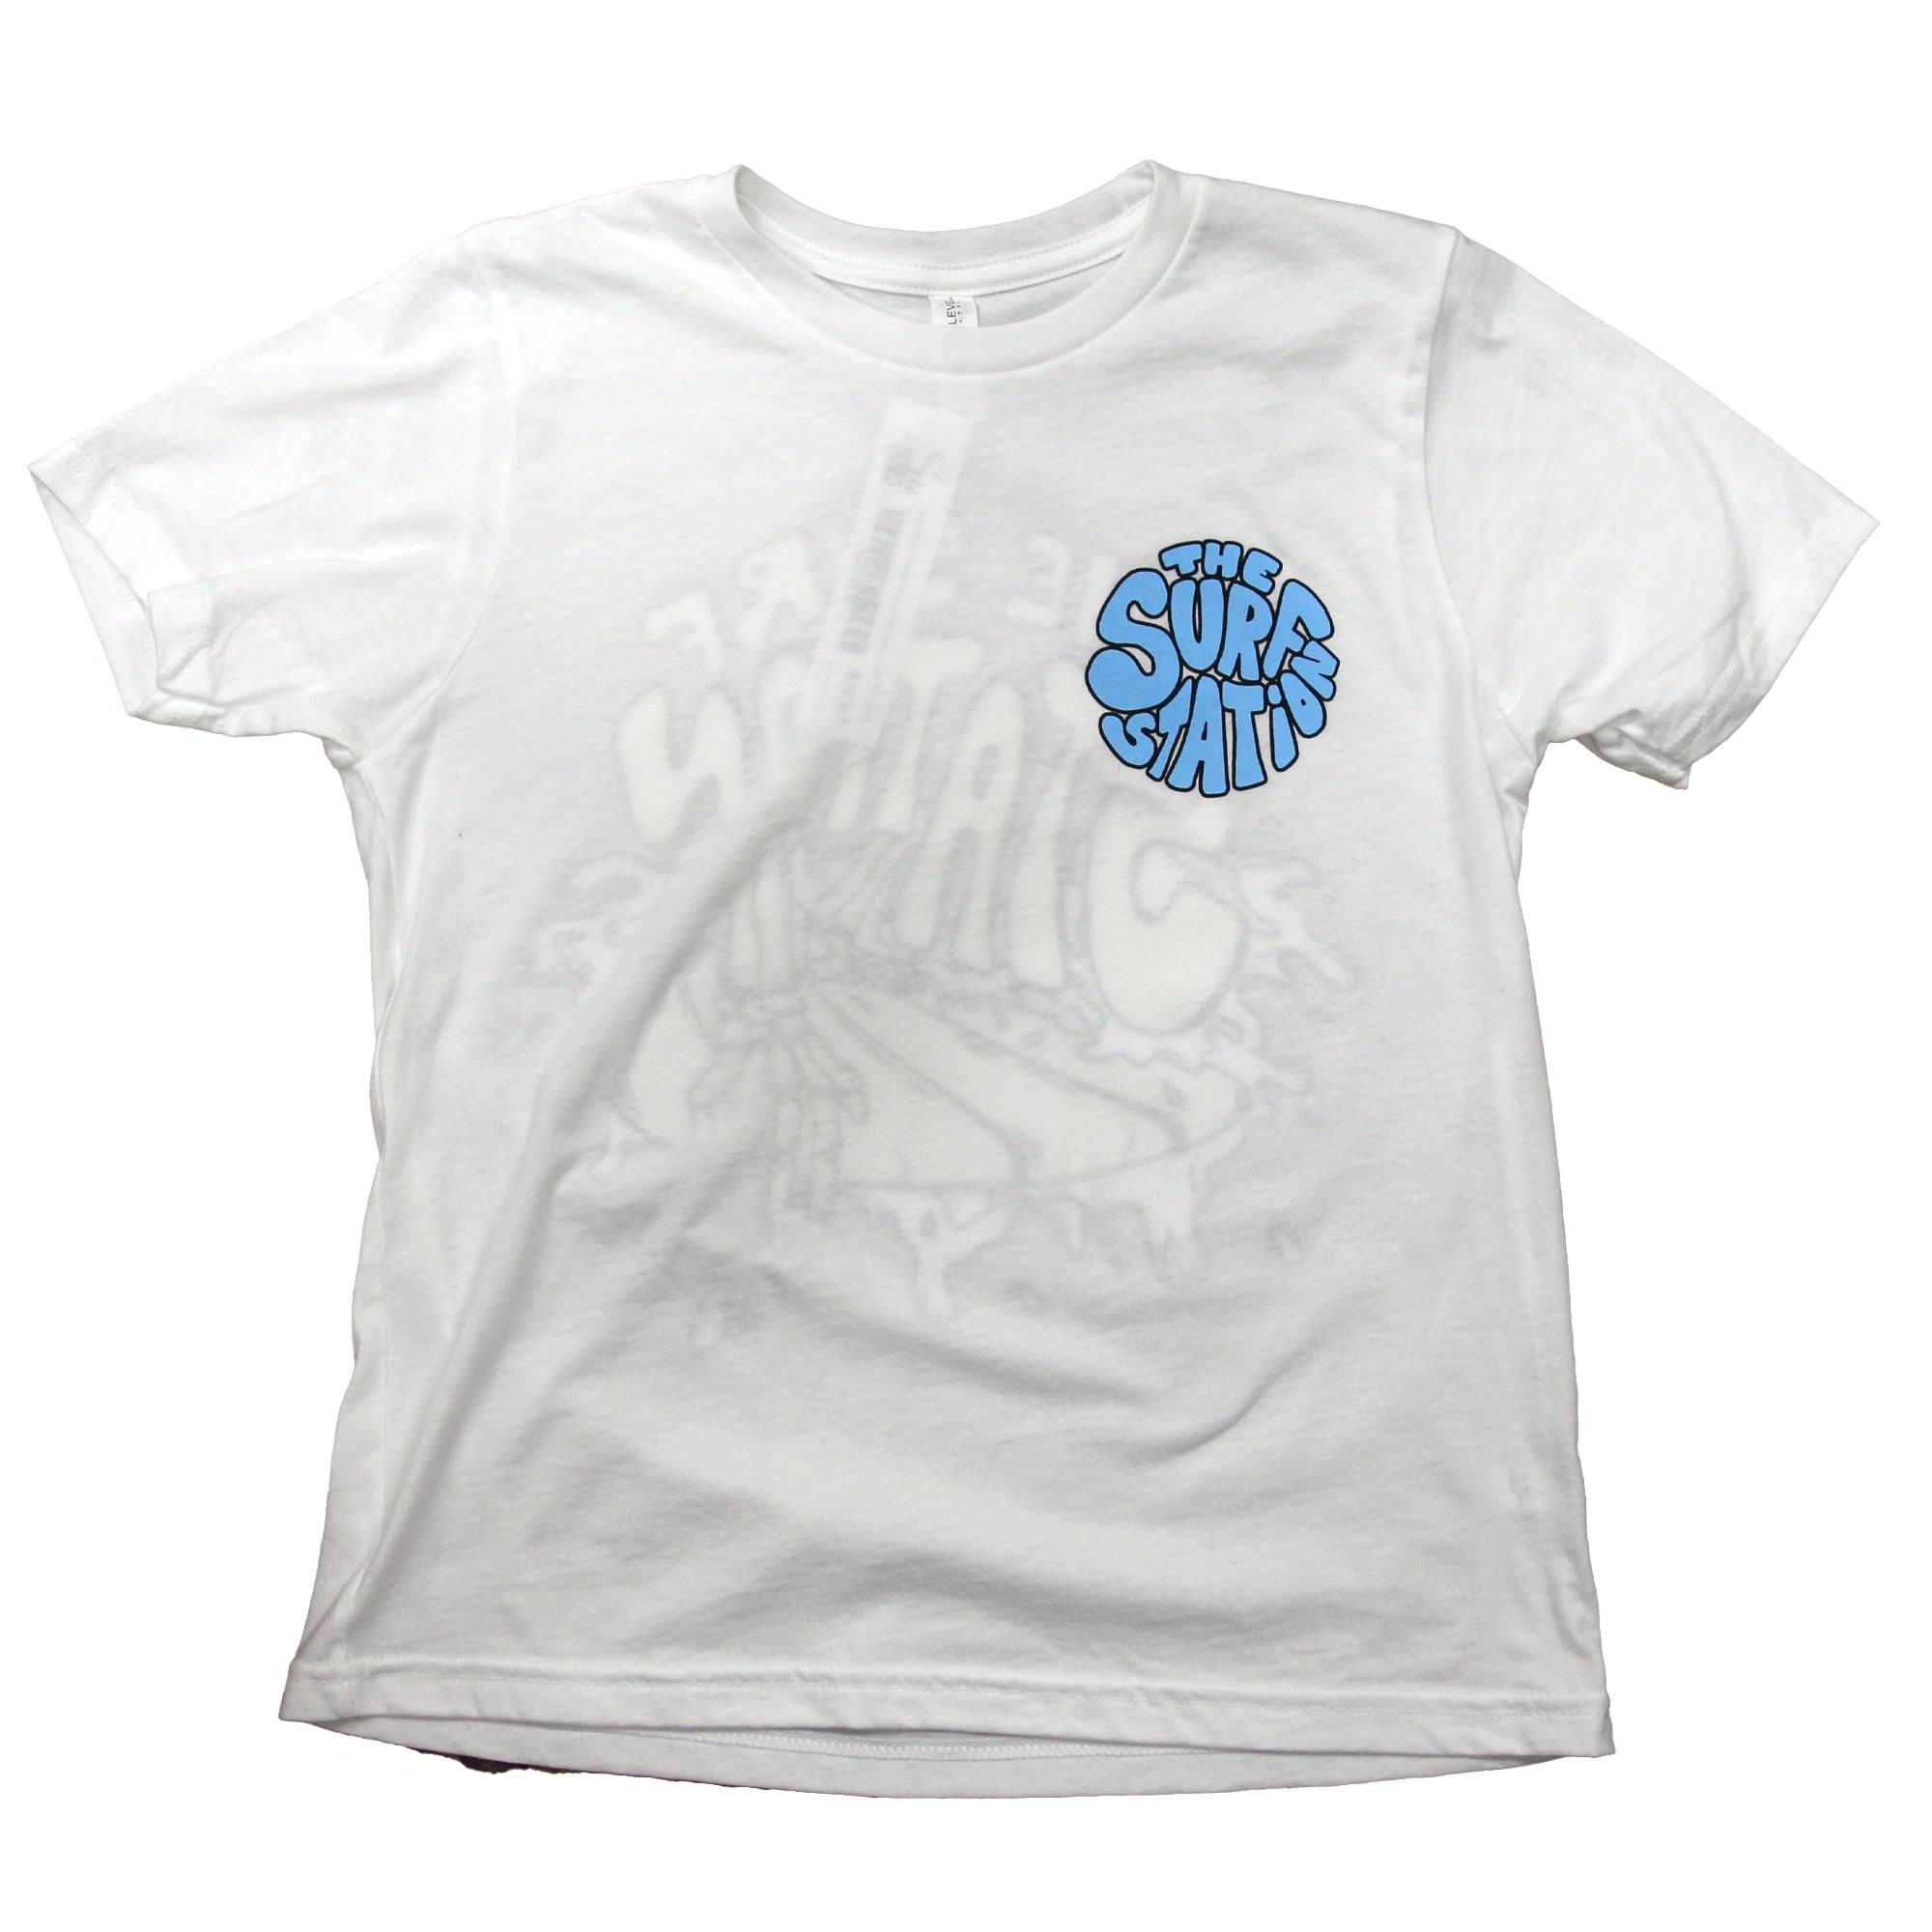 Surf Station Cheater 5 Youth Boy's S/S T-Shirt